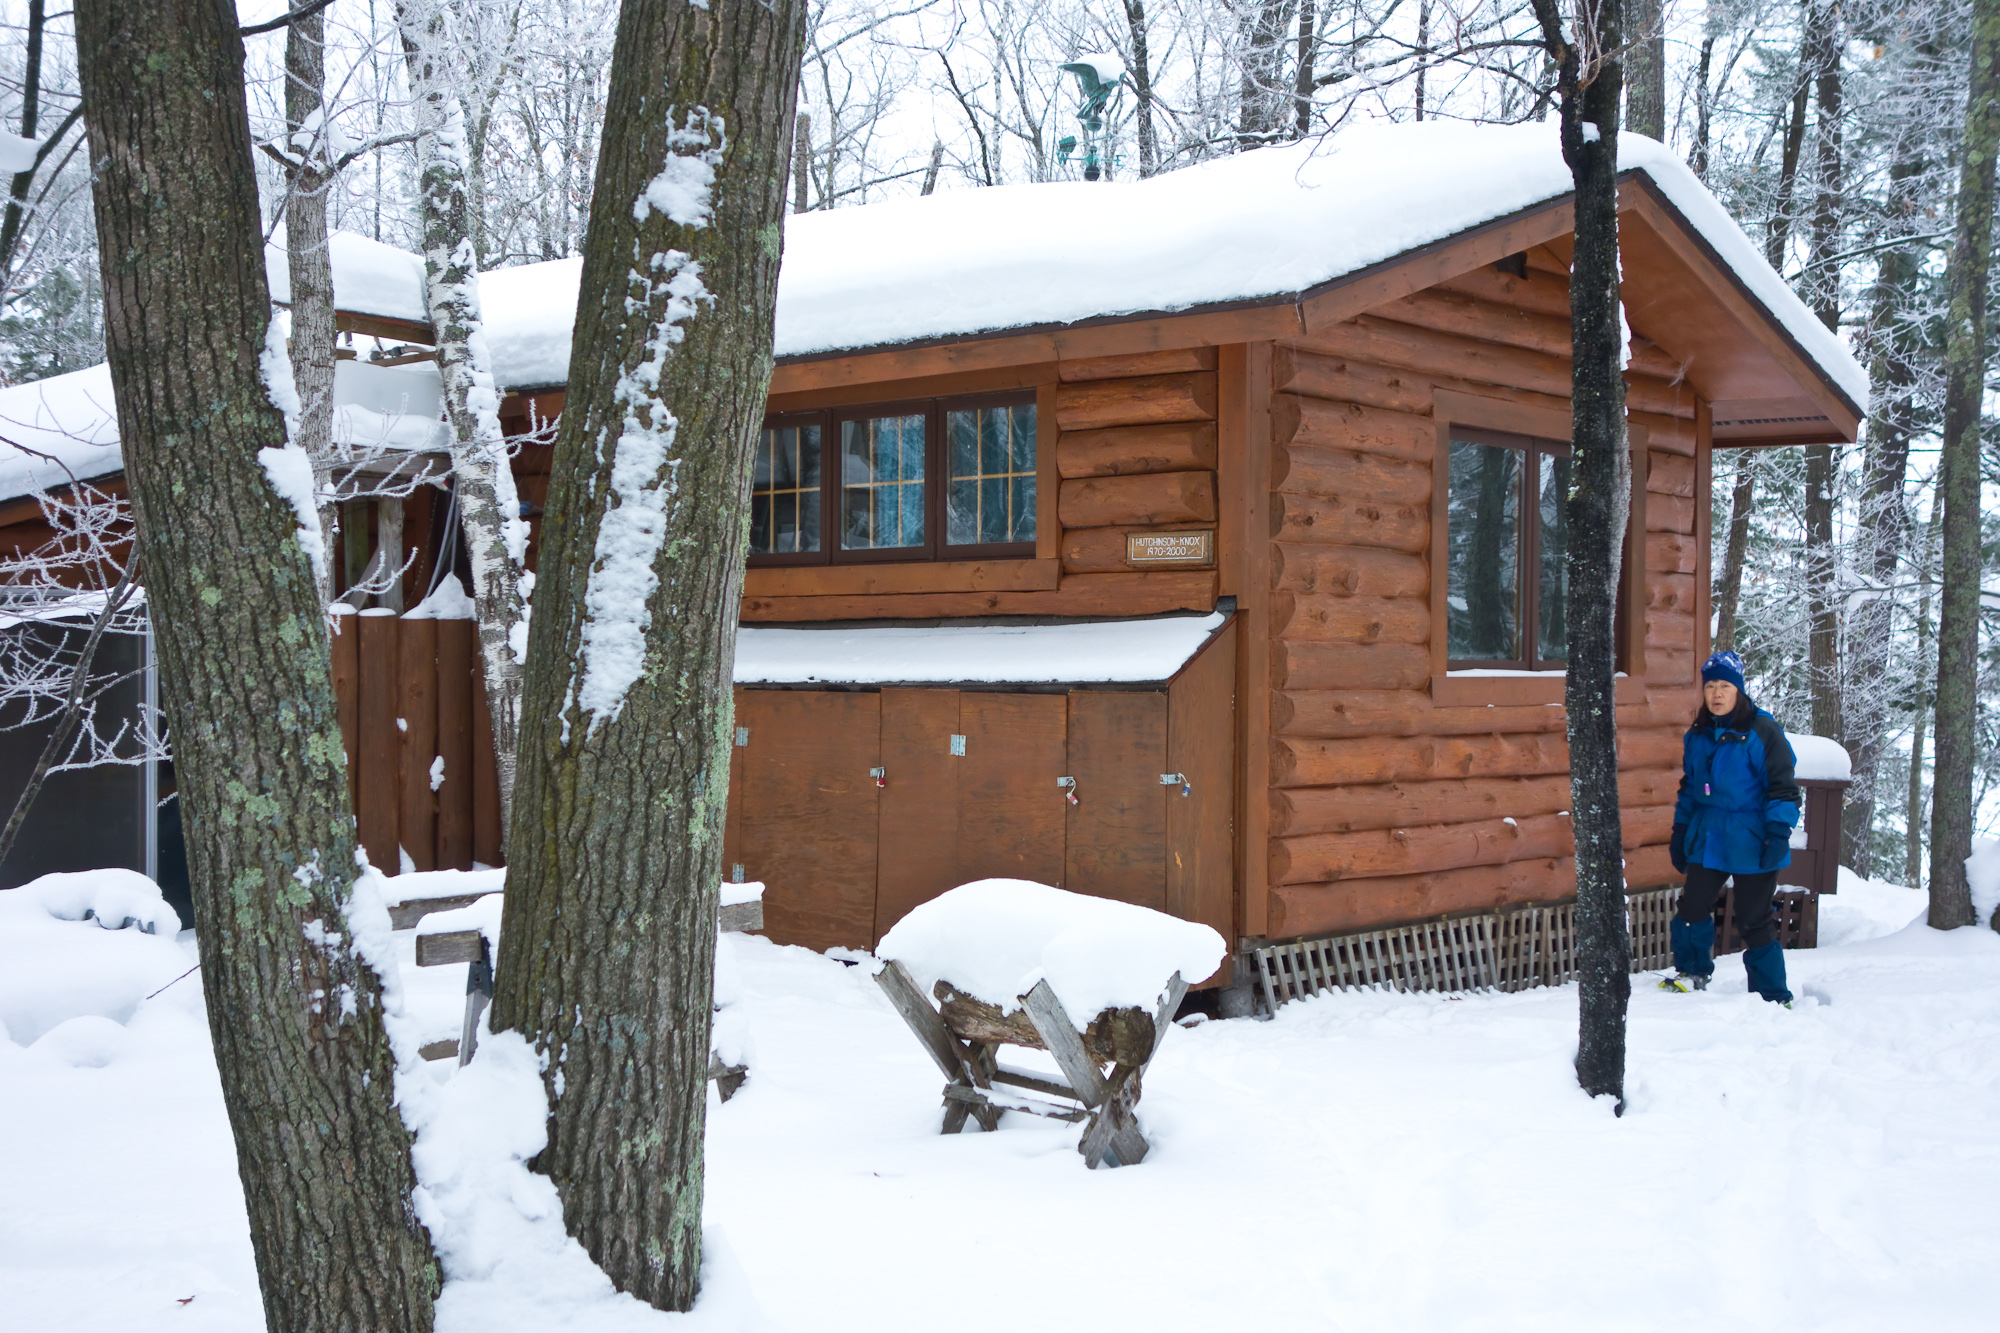 Back of the cabin